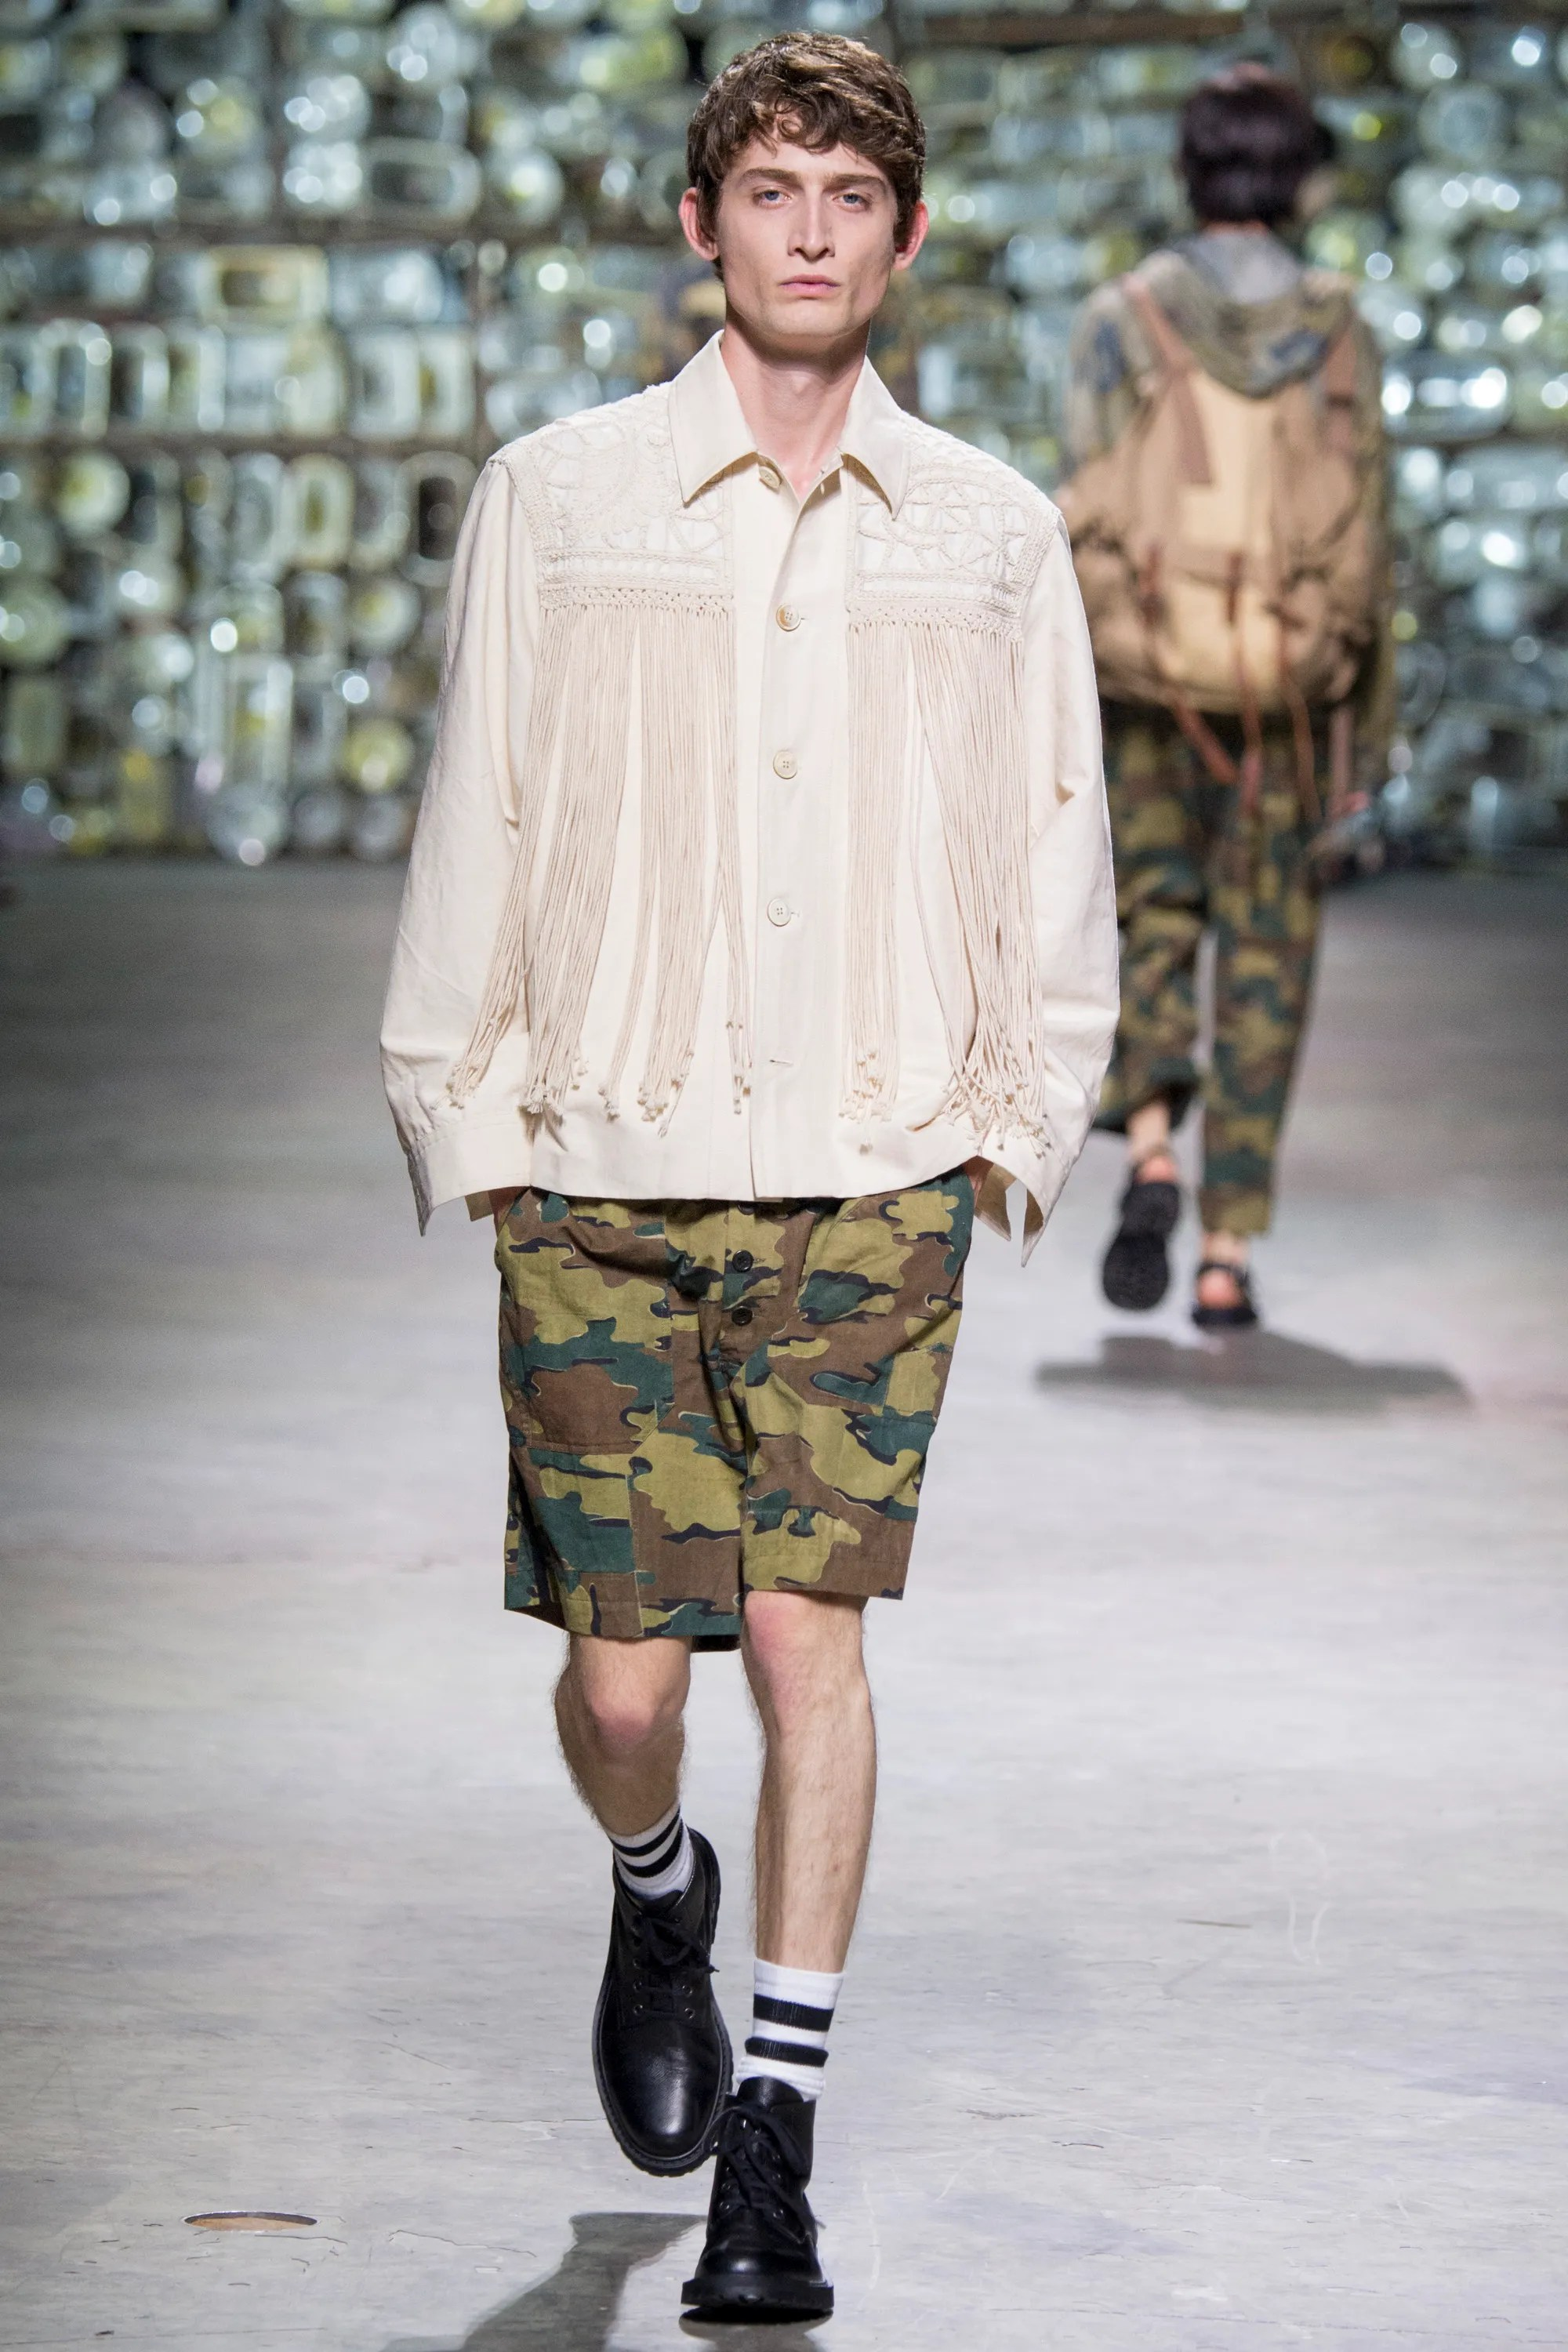 Dries Van Noten Spring/Summer 2017 Menswear